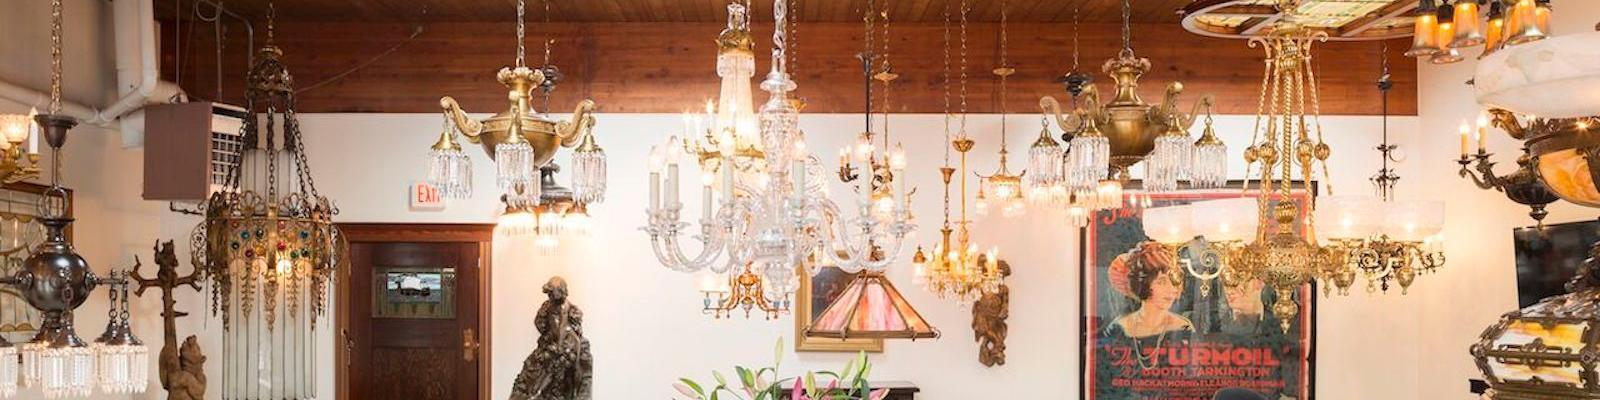 RENEW Gallery Period Lighting and Decorative Arts background